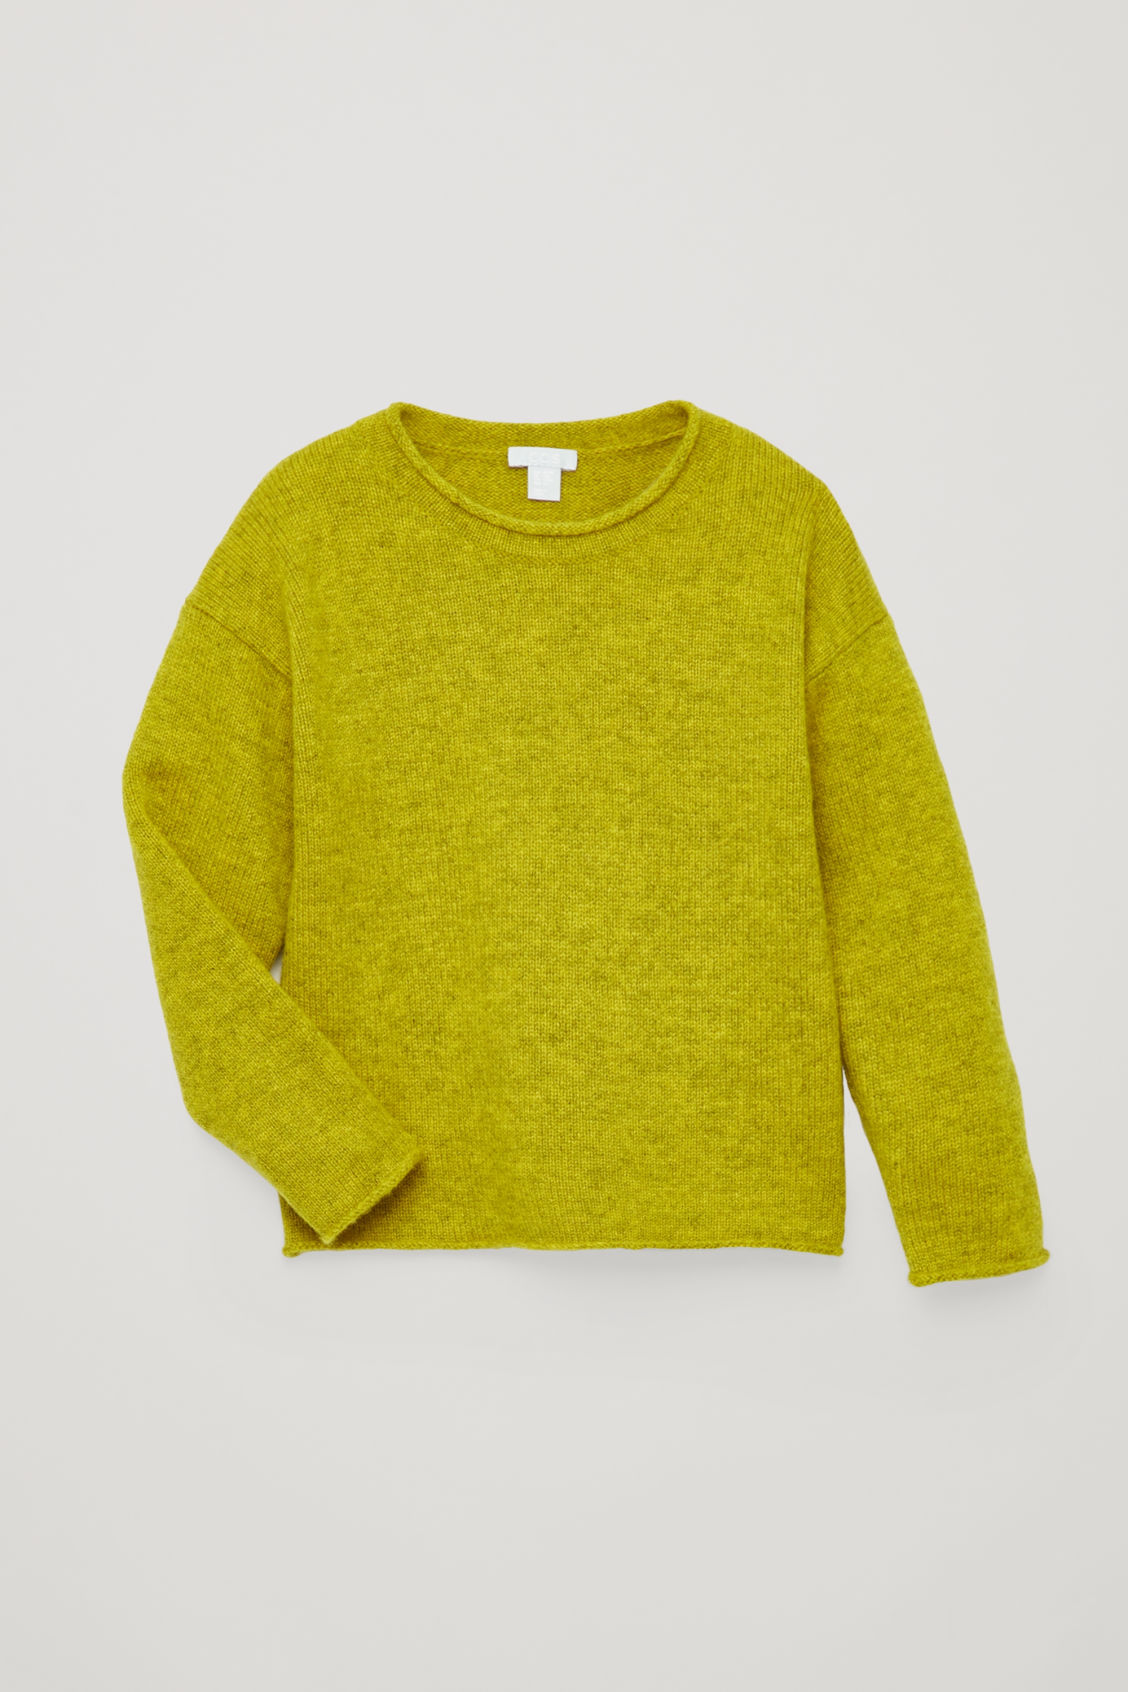 Detailed image of Cos cashmere knitted jumper in yellow